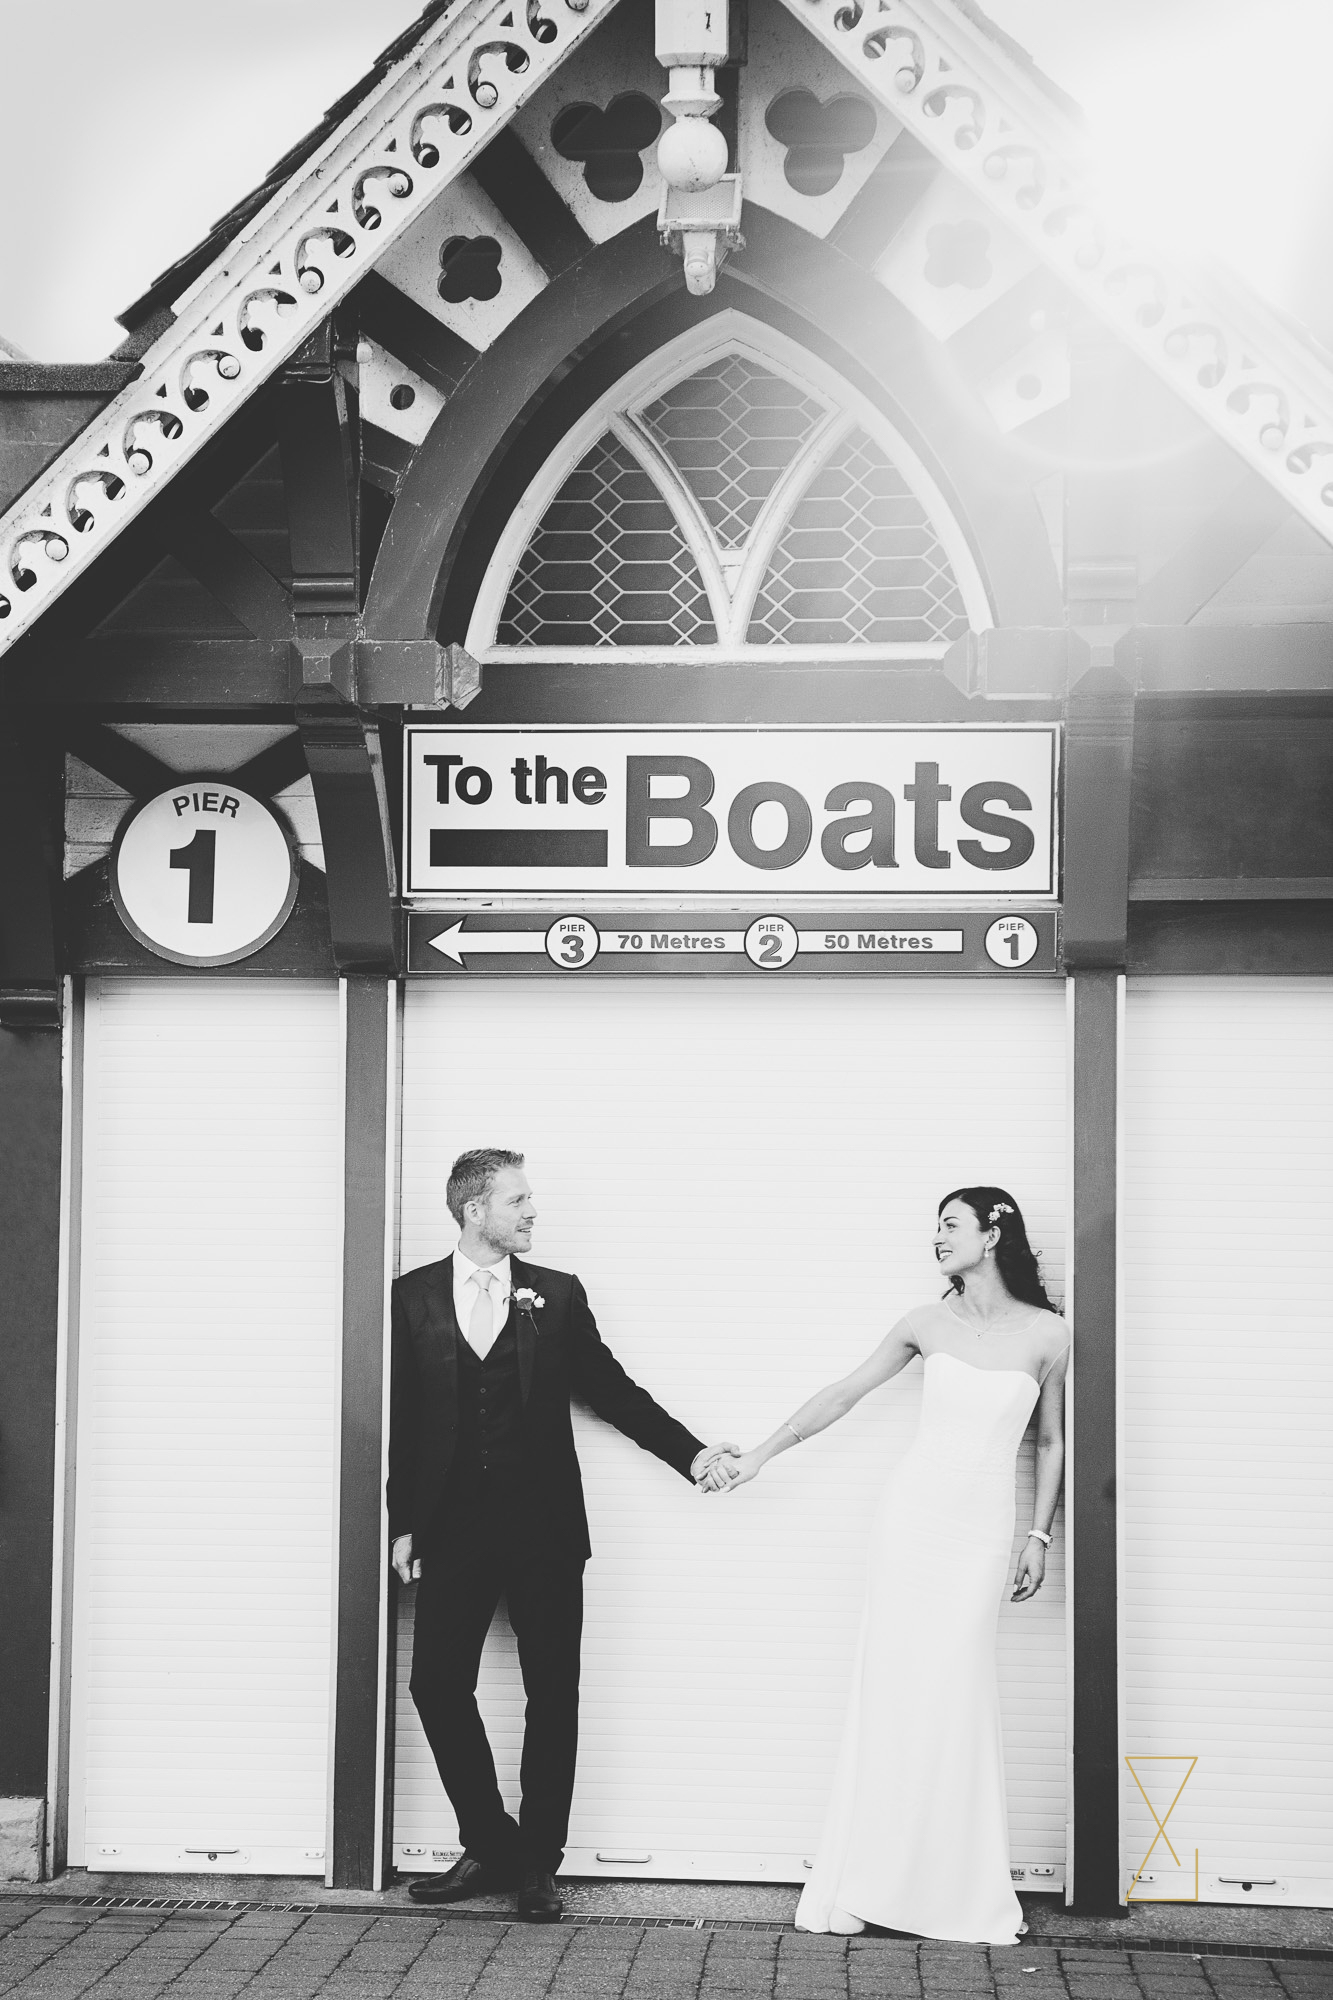 Bride-and-groom-at-the-boathouse-Laura-Ashley-Belsfield-Evans-and-Evans-wedding-photography-Lake-District-wedding.jpg